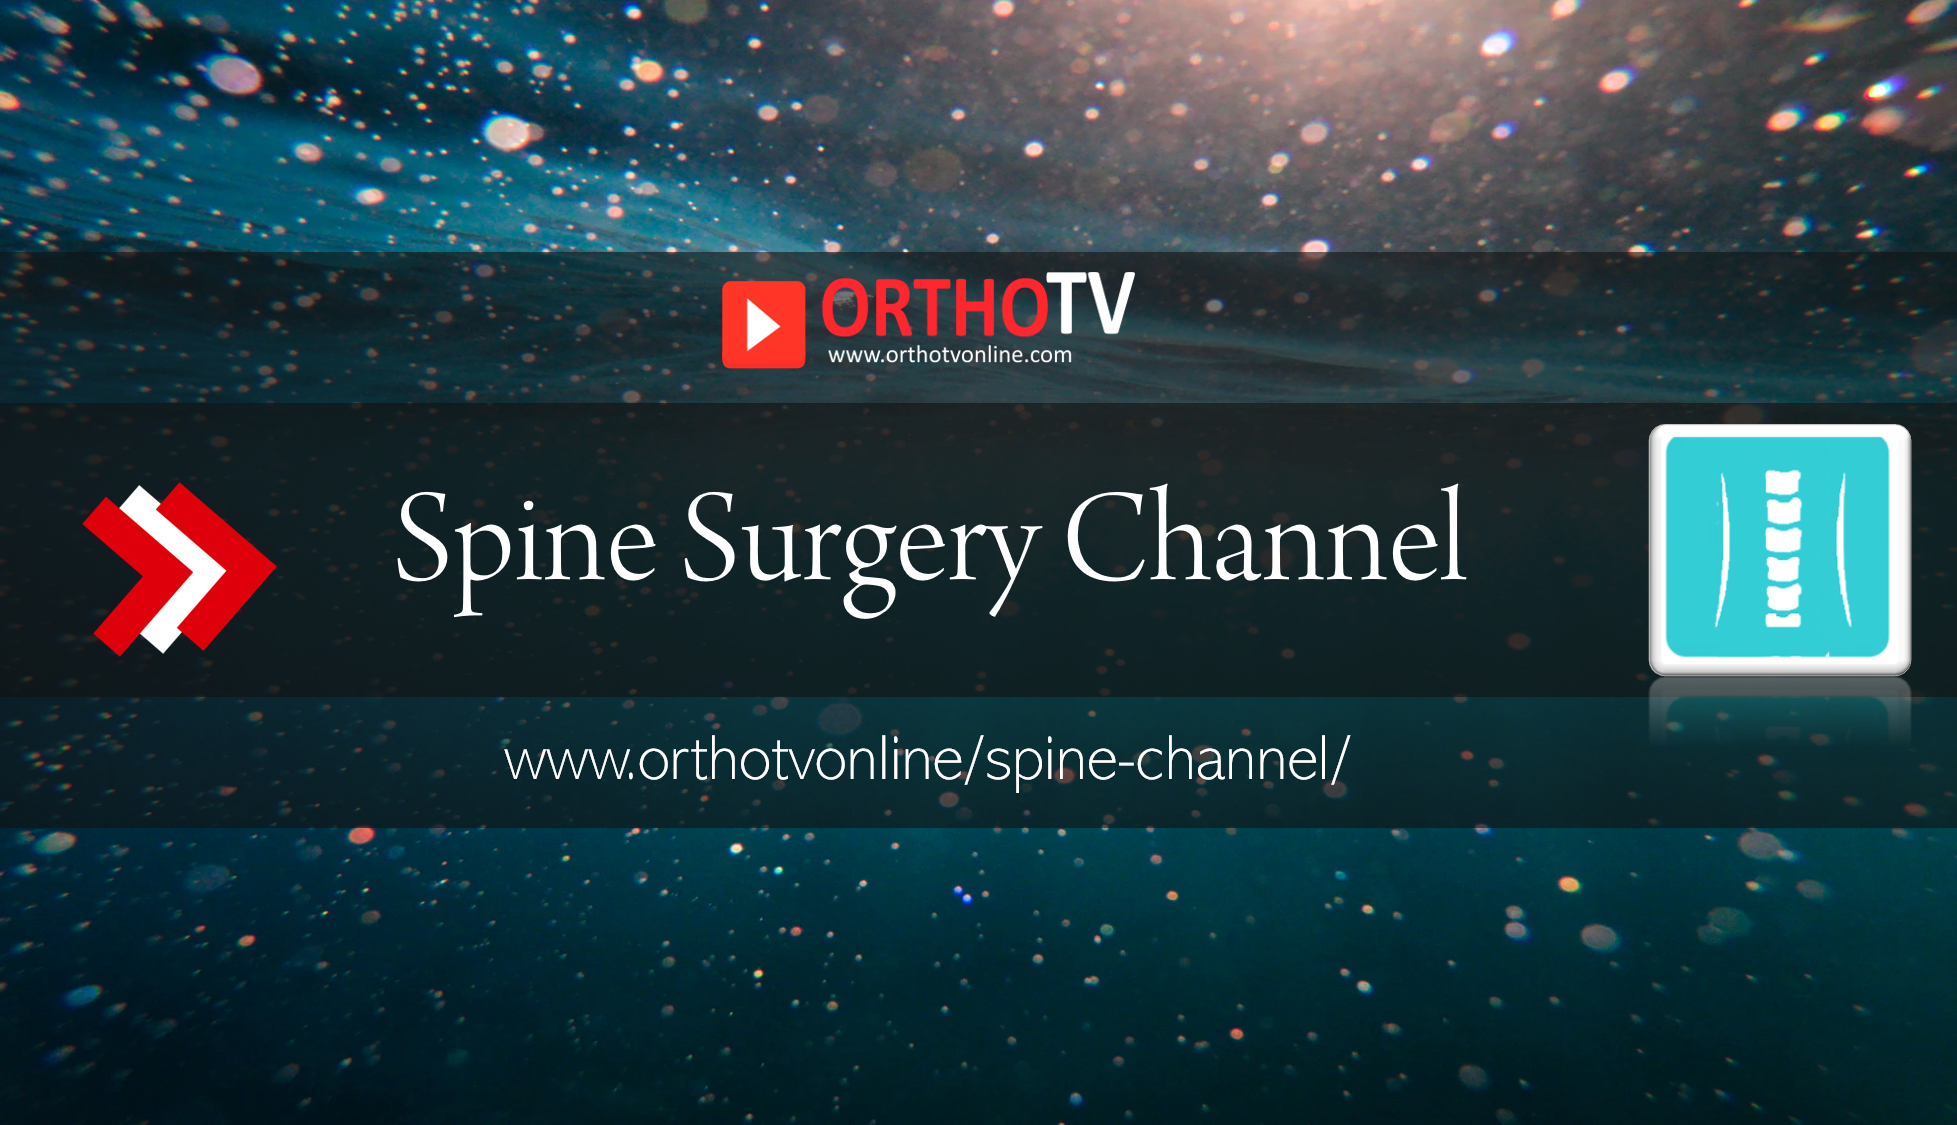 - OrthoTV Spine Surgery Channel - Spine Channel